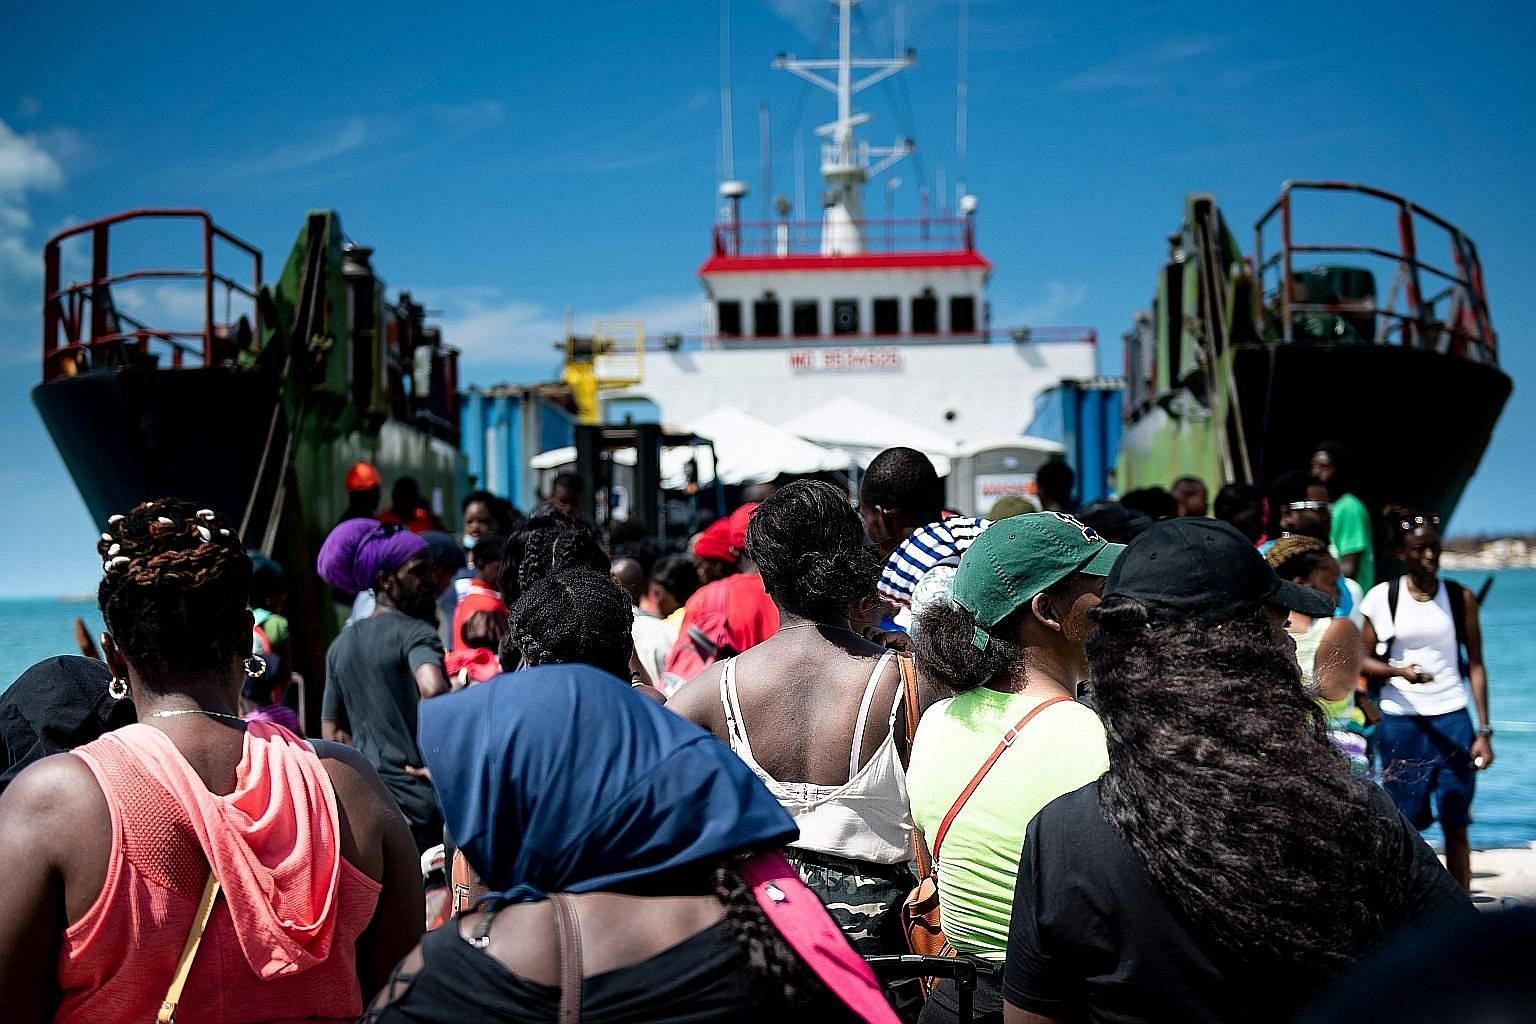 People boarding a cargo ship at a port in Great Abaco on Saturday for evacuation to Nassau, Bahamas, in the wake of Hurricane Dorian.